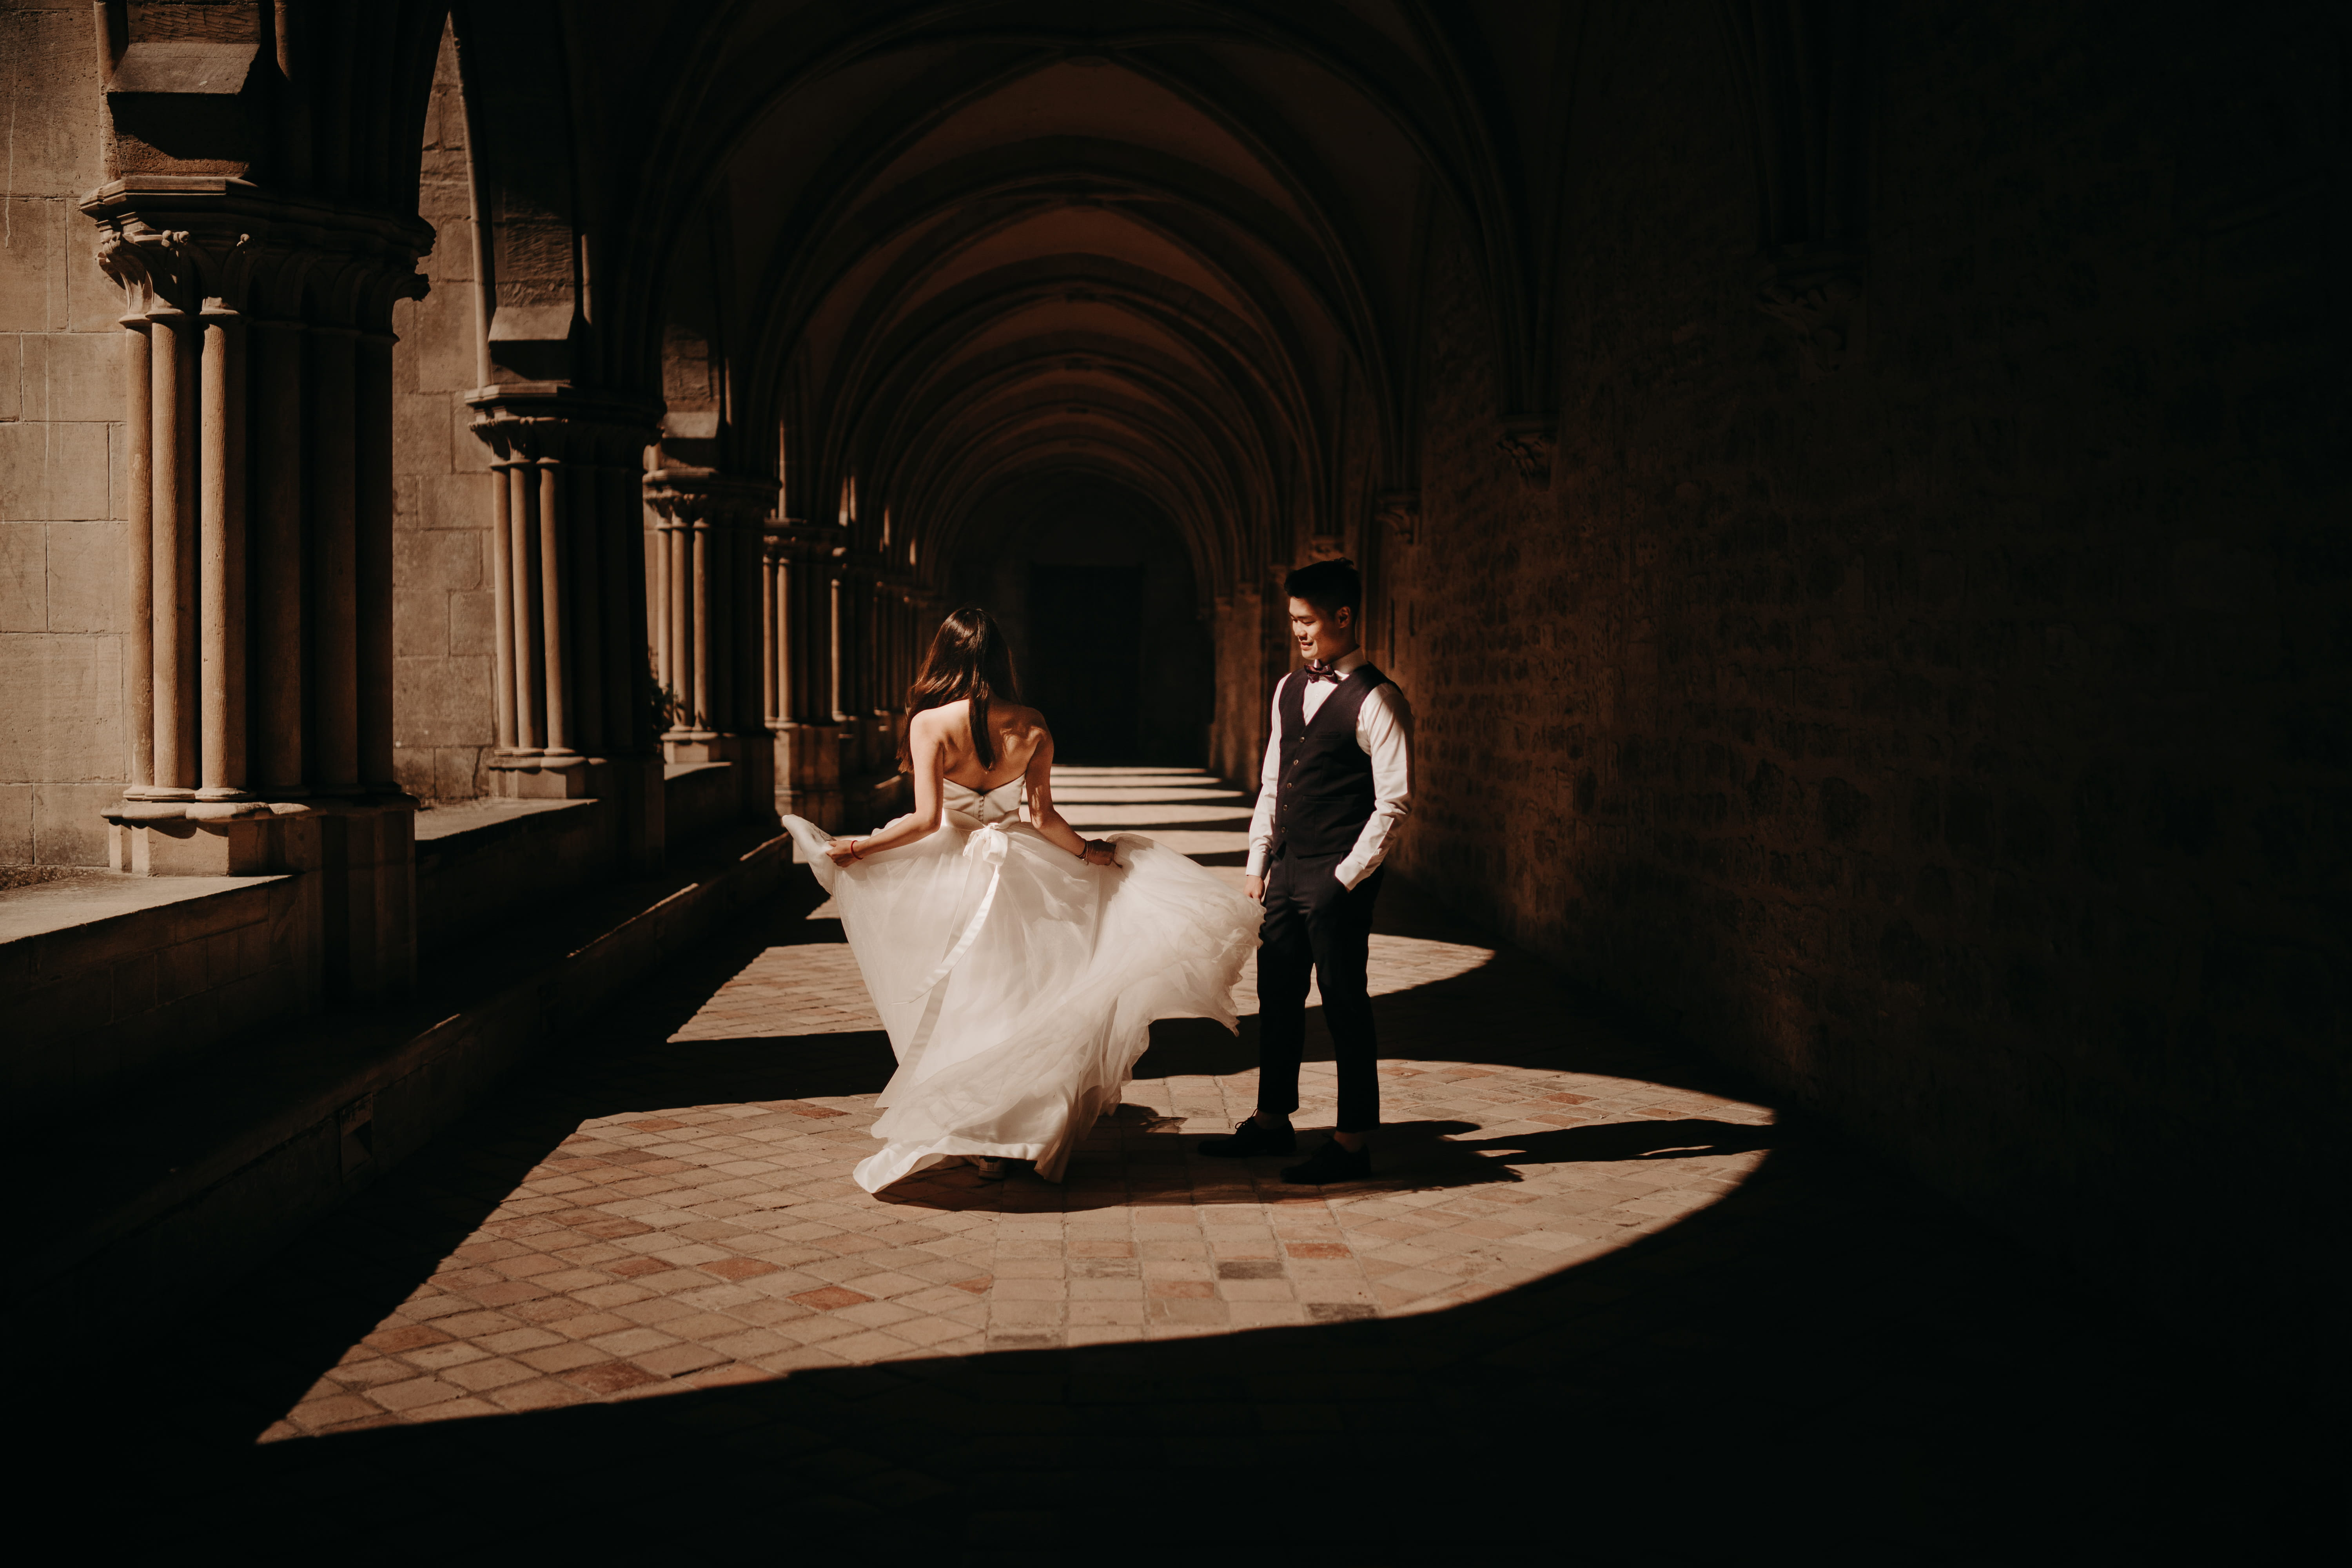 seance day after mariage wedding abbaye de royaumont val d'oise photographe laurène and the wolf